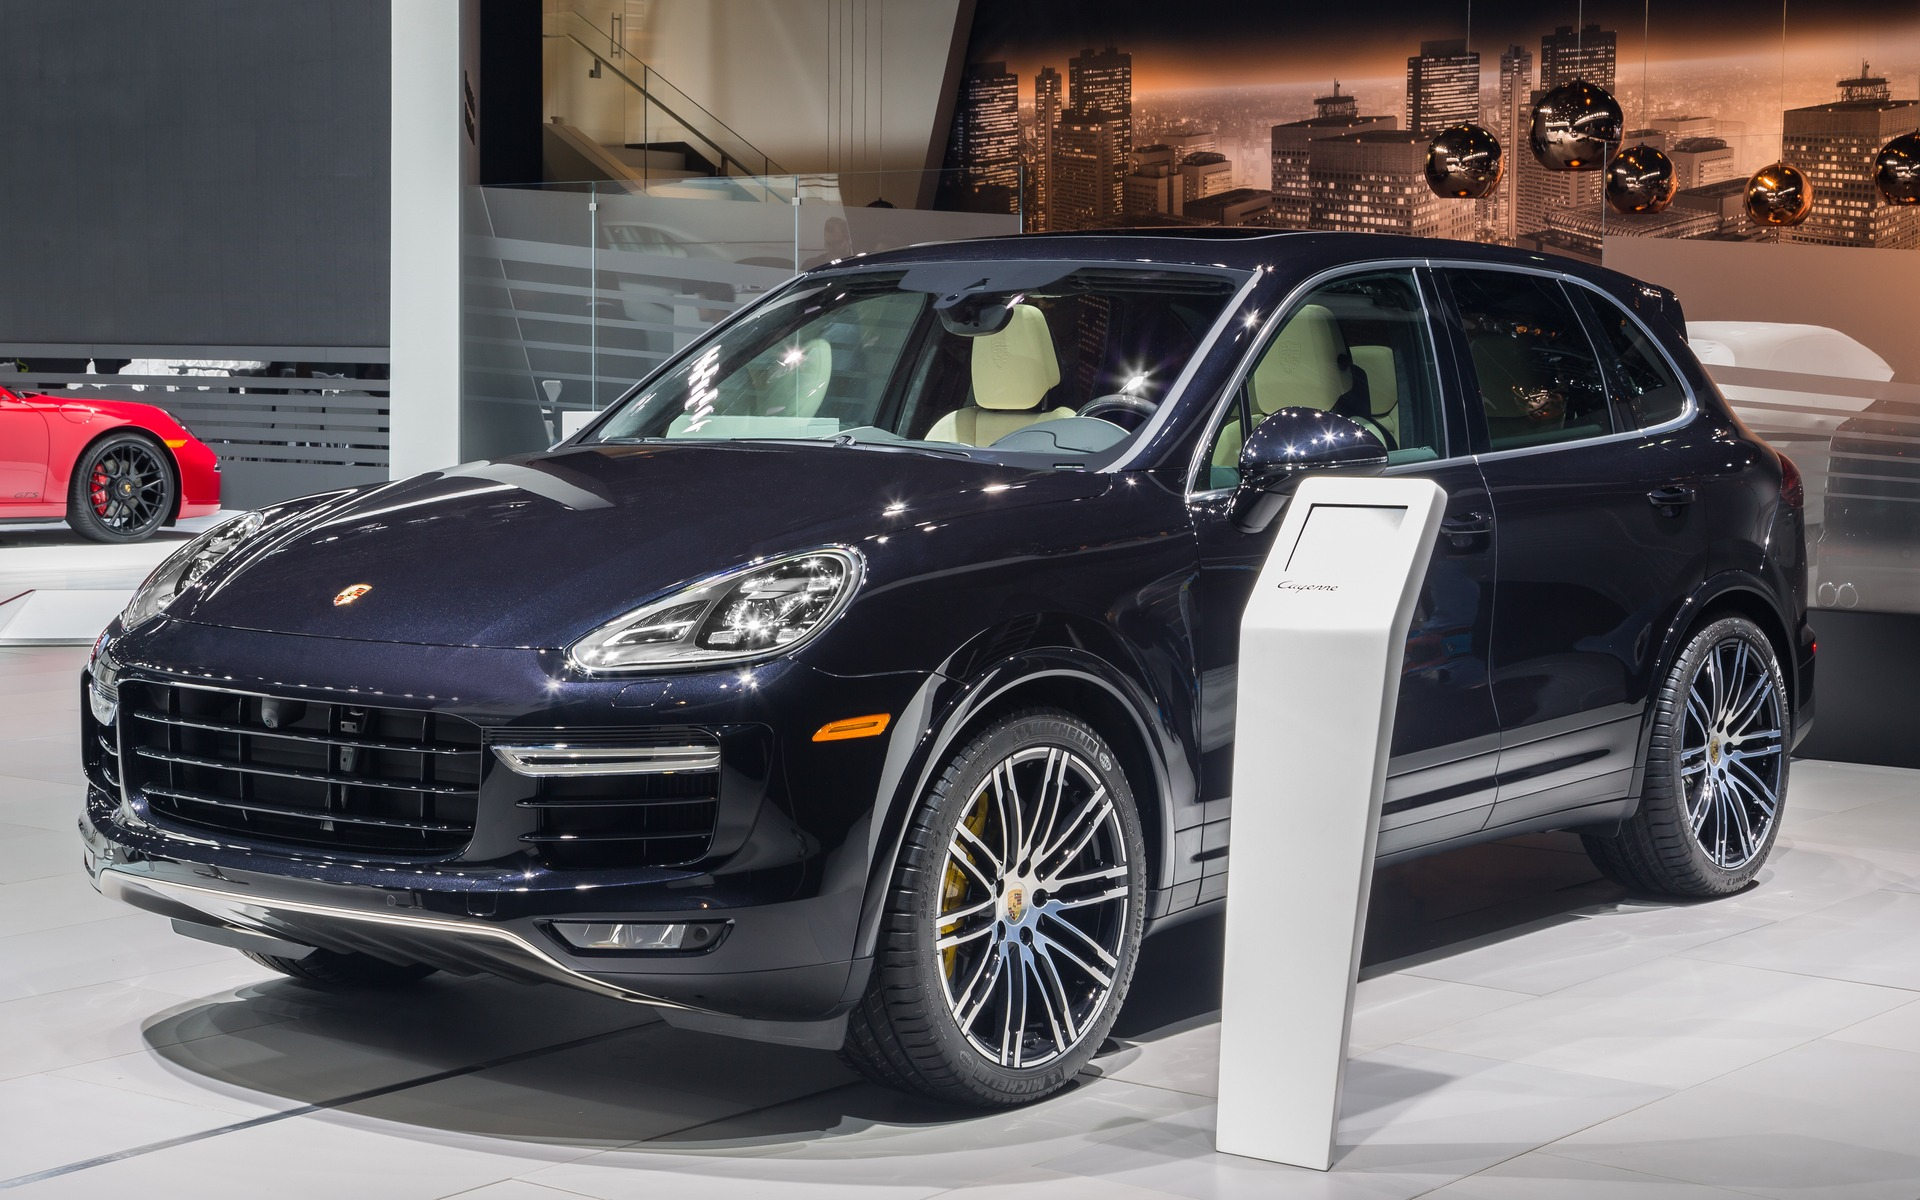 2016 porsche cayenne turbo s lap the n rburgring with style the car guide. Black Bedroom Furniture Sets. Home Design Ideas